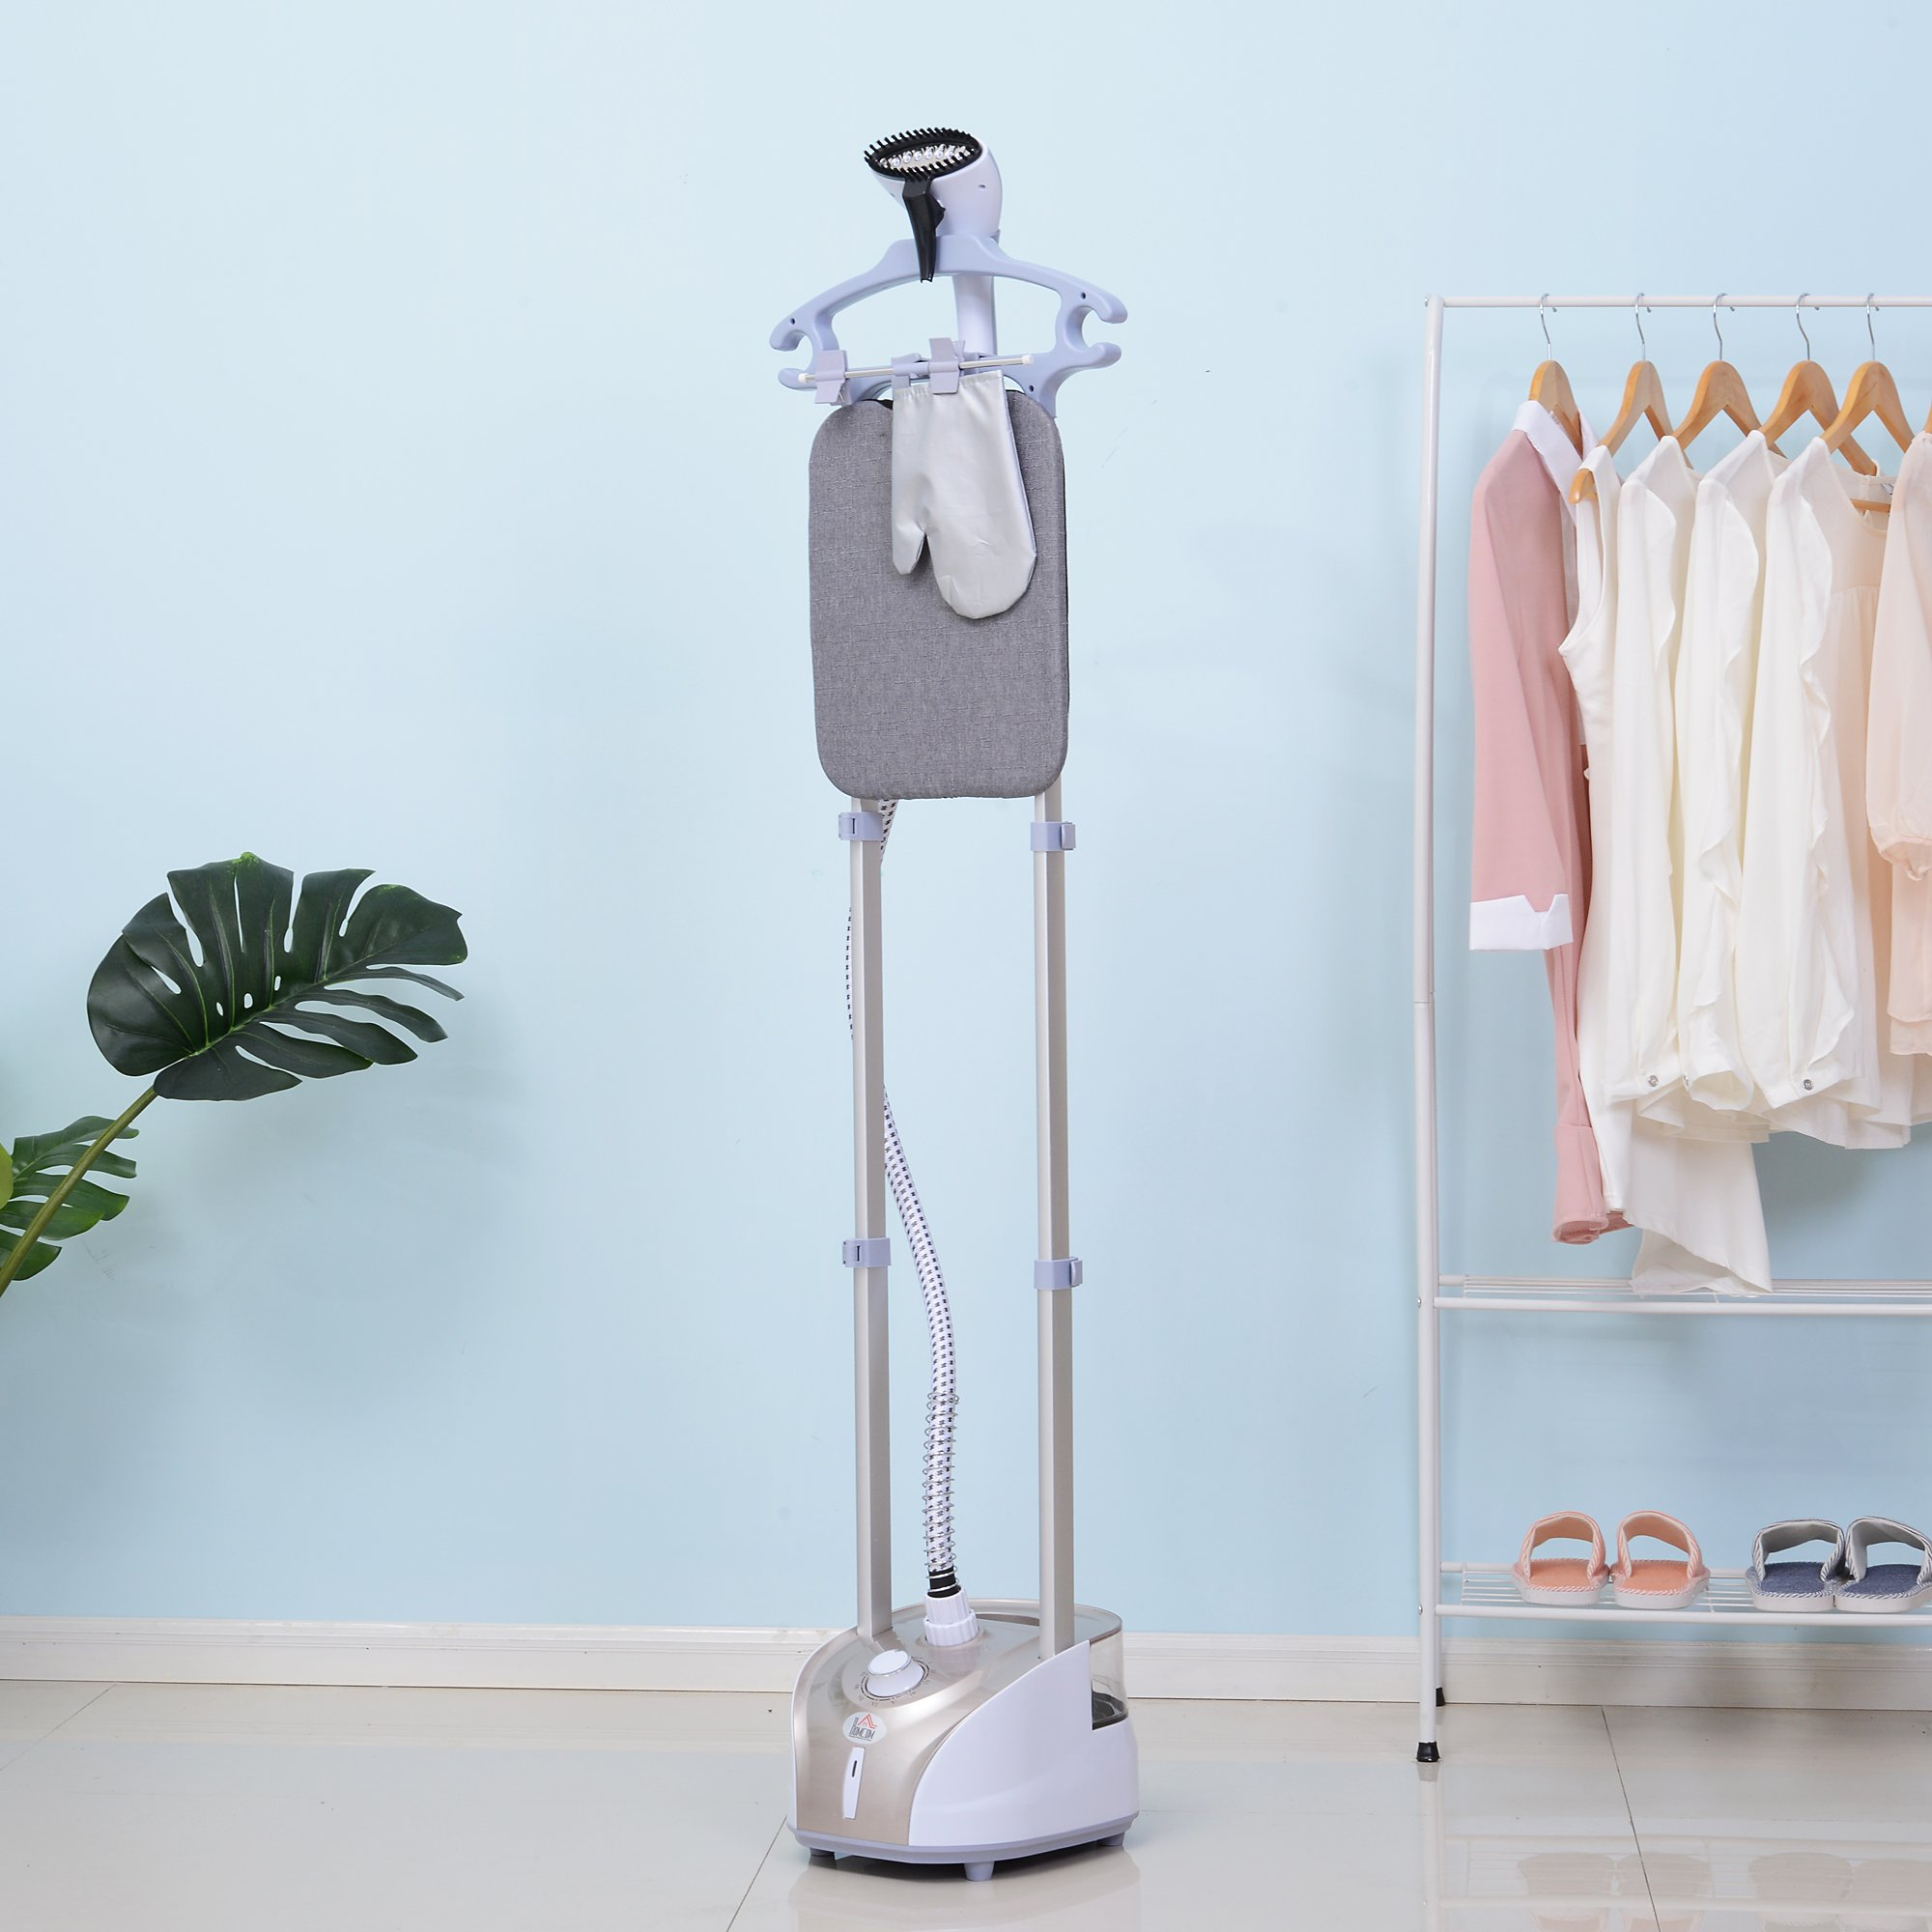 1800W Full-Size 2-Liter Upright Garment Steamer with Built-in Ironing Board and Hanger